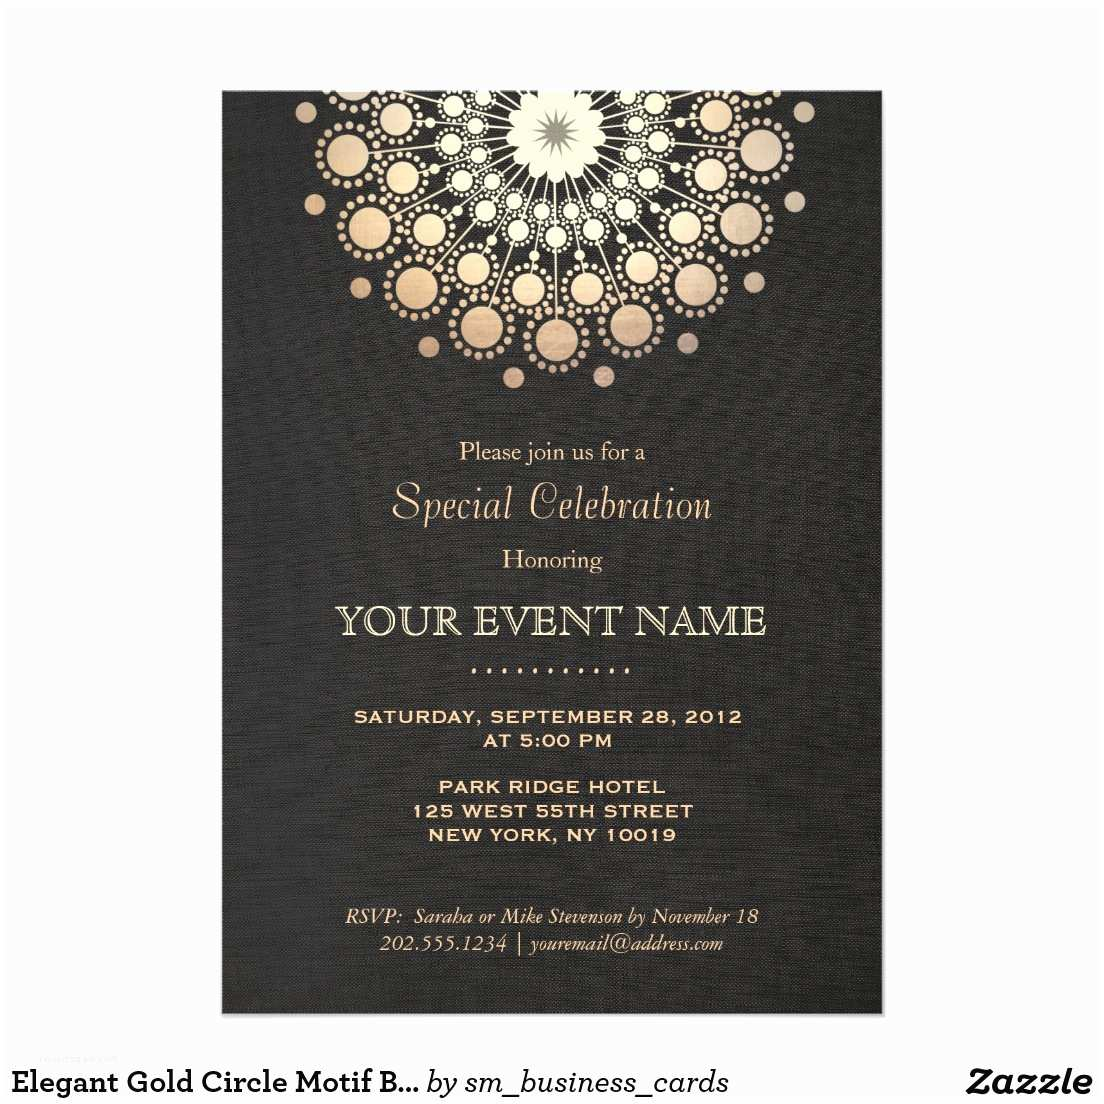 Elegant Party Invitations Elegant Party Invitation Mickey Mouse Invitations Templates